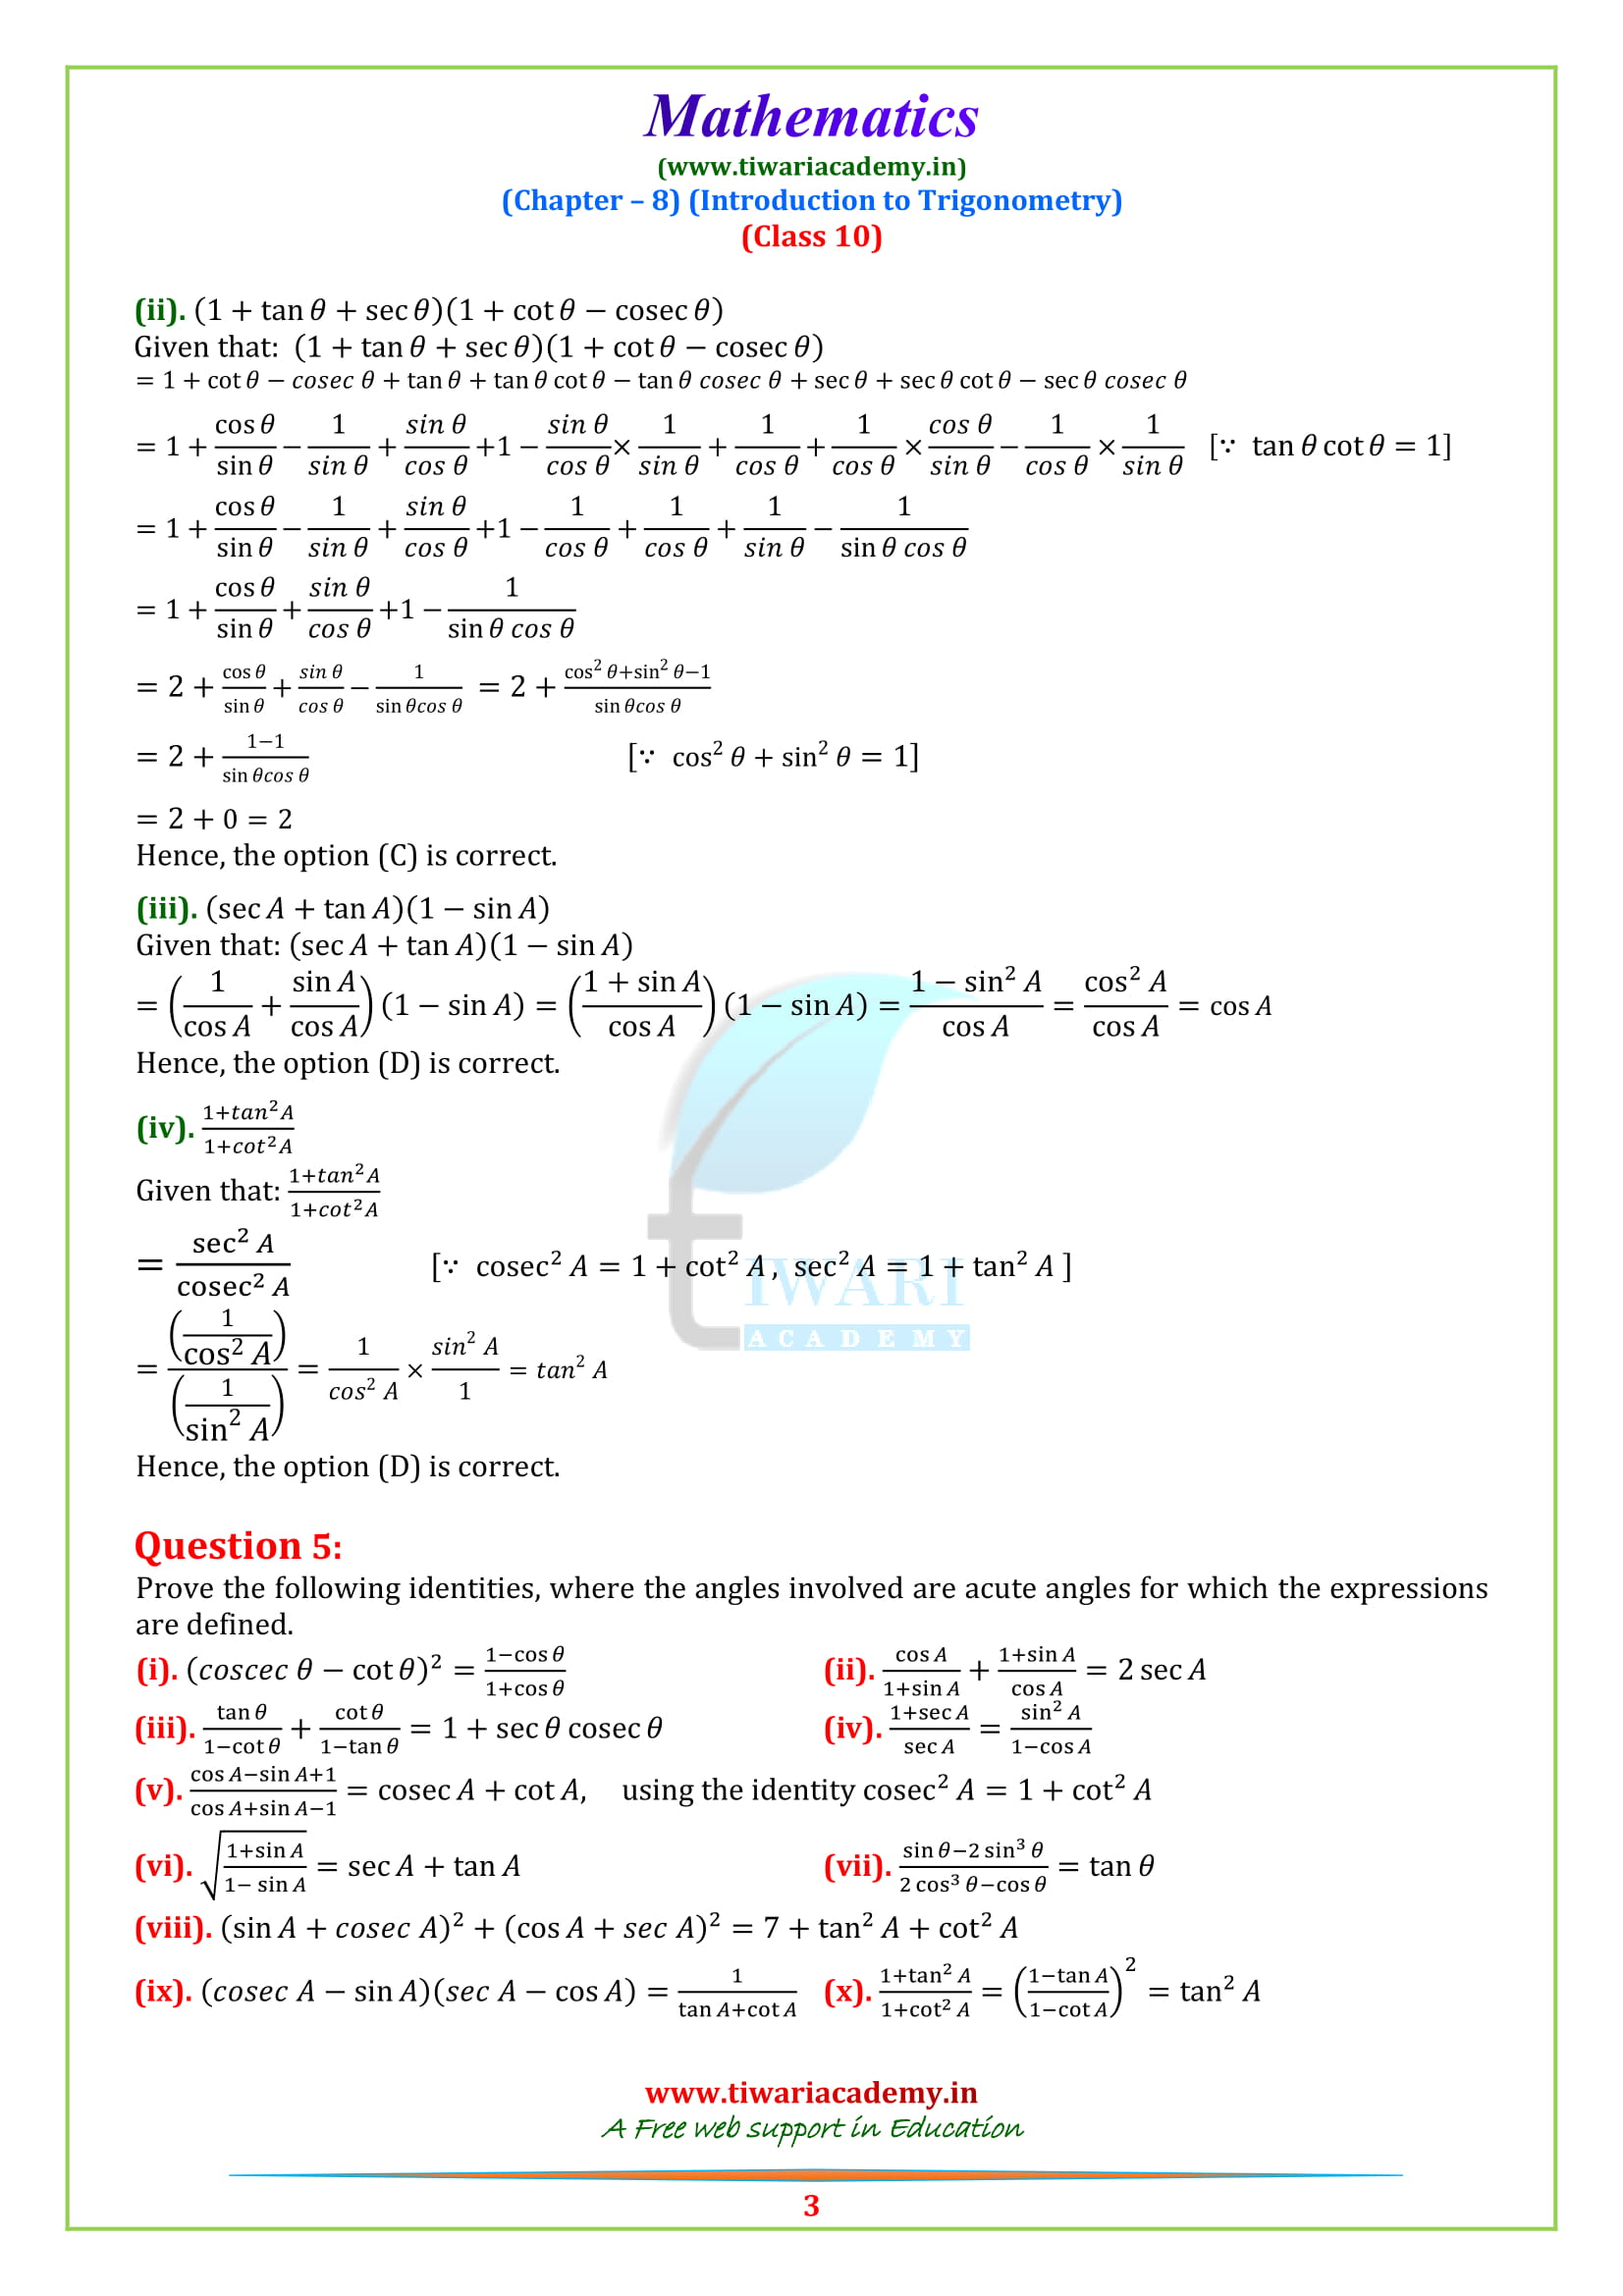 NCERT Solutions for class 10 Maths Chapter 8 Exercise 8.4 updated for 2018-19 exams